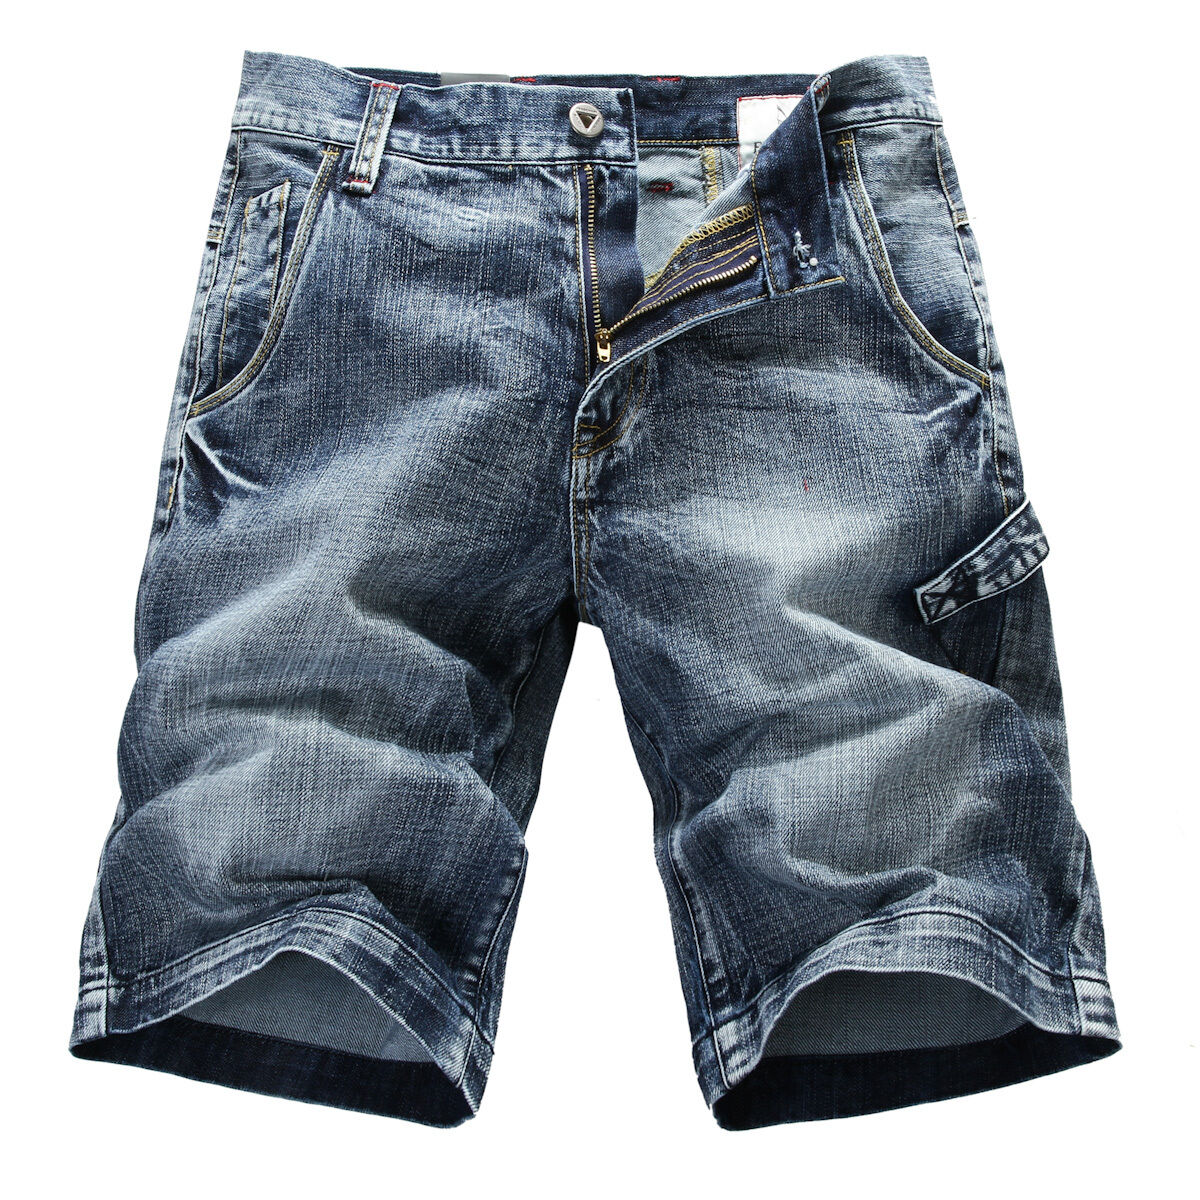 FOX JEANS Men's Allen Knee-length Standar Fit bluee Denim Shorts SIZE 32-44